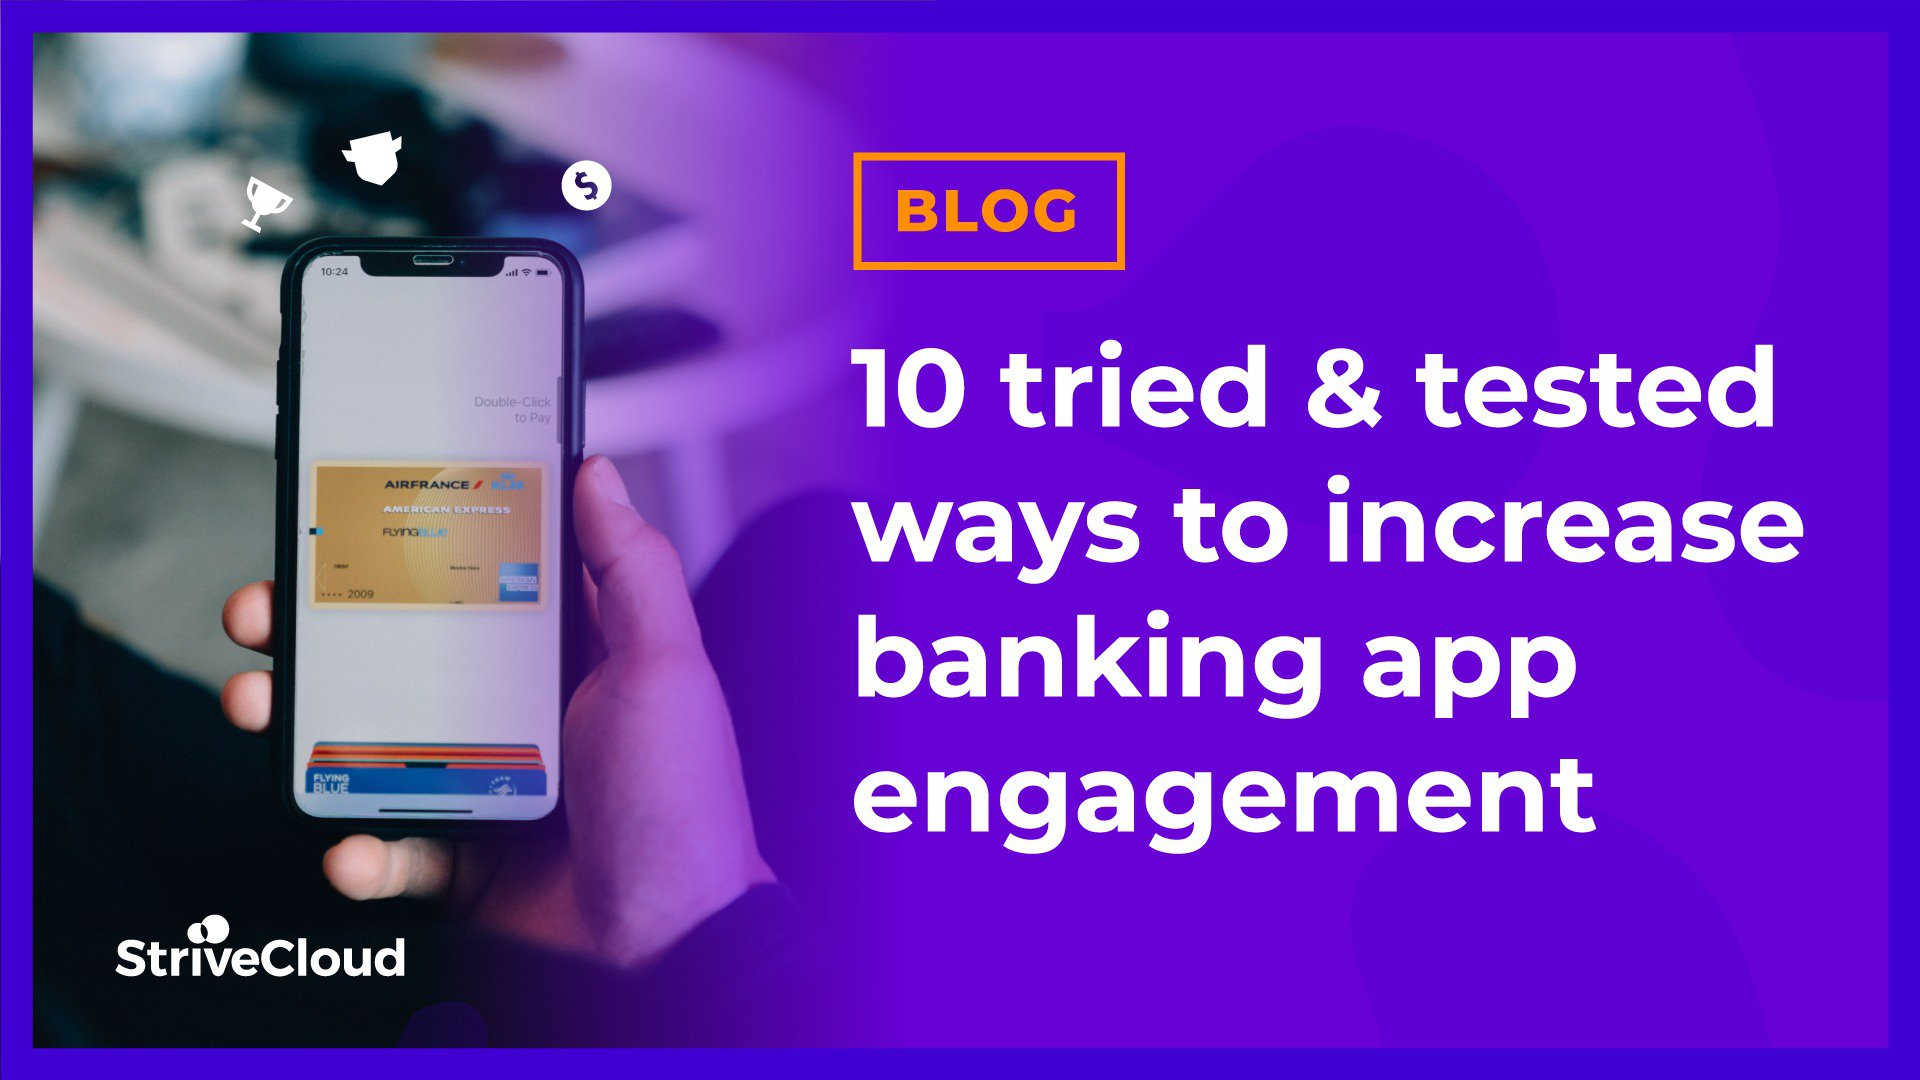 10 tried & tested ways to increase banking app engagement